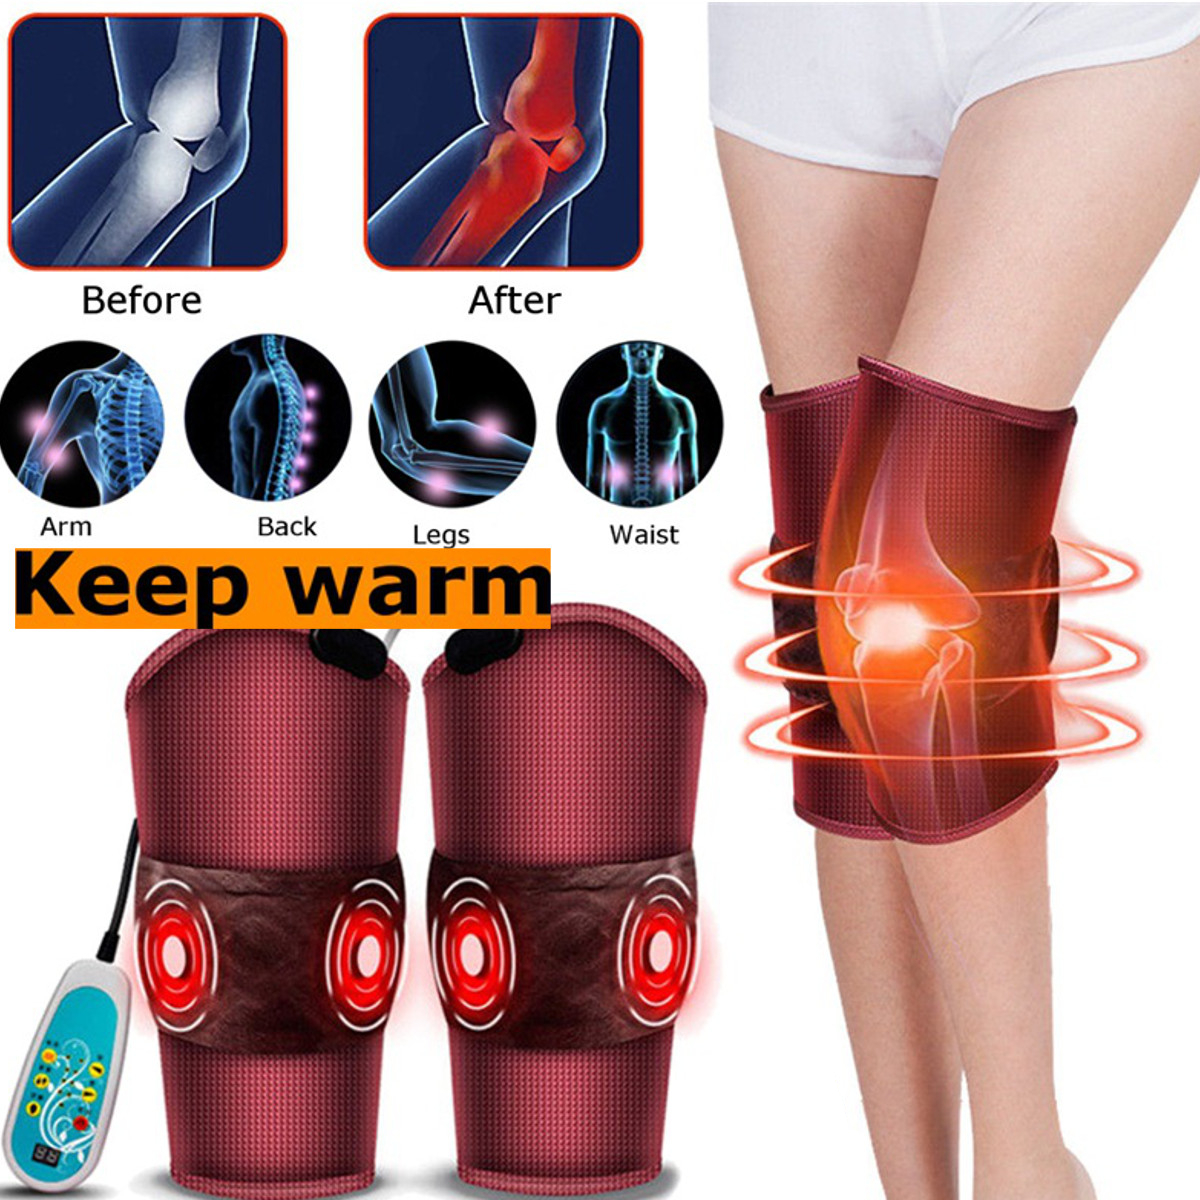 Electric Knee Leg Massager Pad Heating Vibrating Physical Therapy Arm Waist Massage For Arthritis Rheumatism Relieve Health Care vibrating prostate massage physical rehabilitation instruments for man s disease care